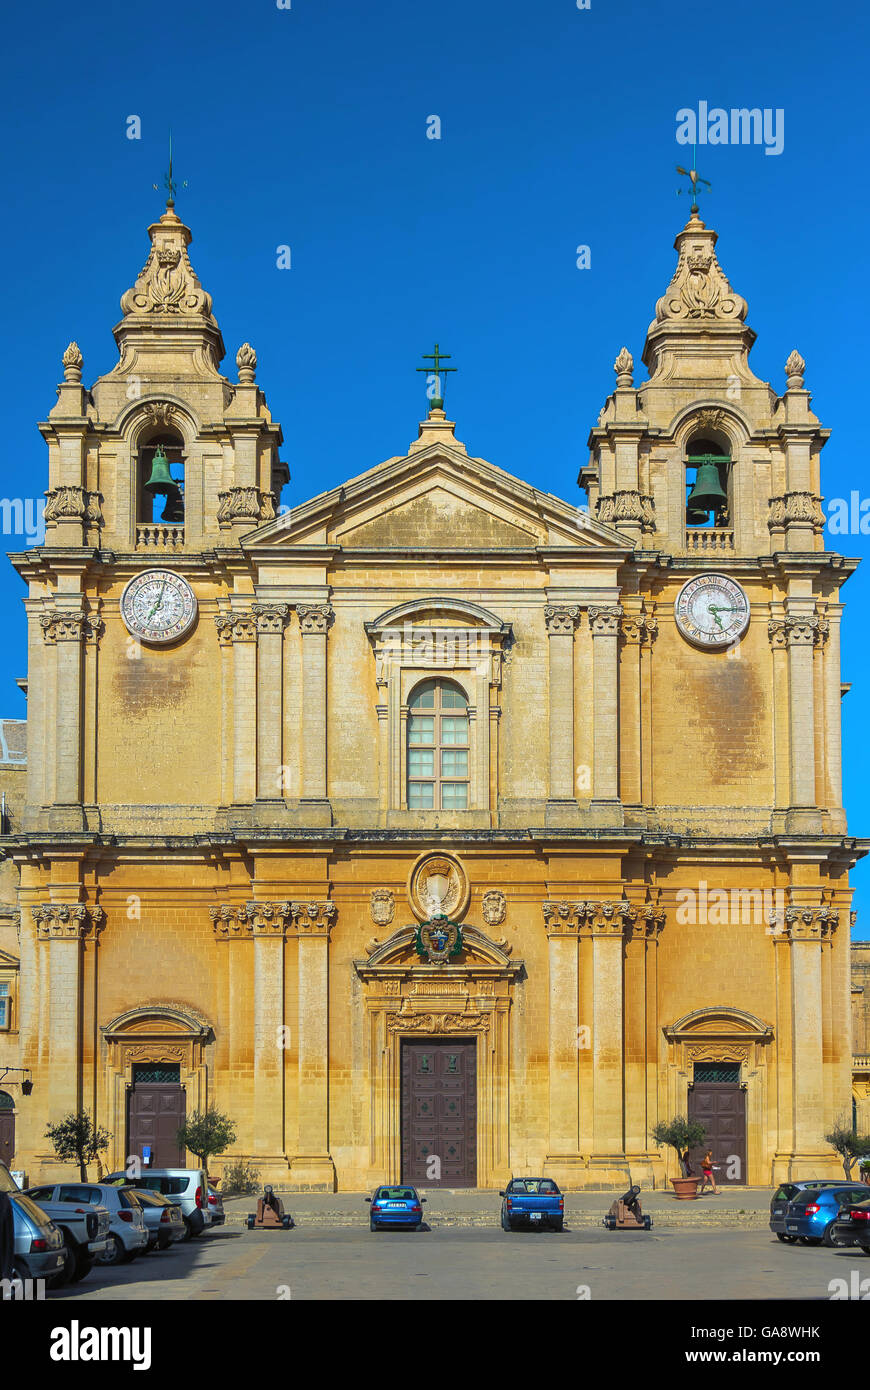 Malta, Mdina - St Paul's cathedral Stock Photo